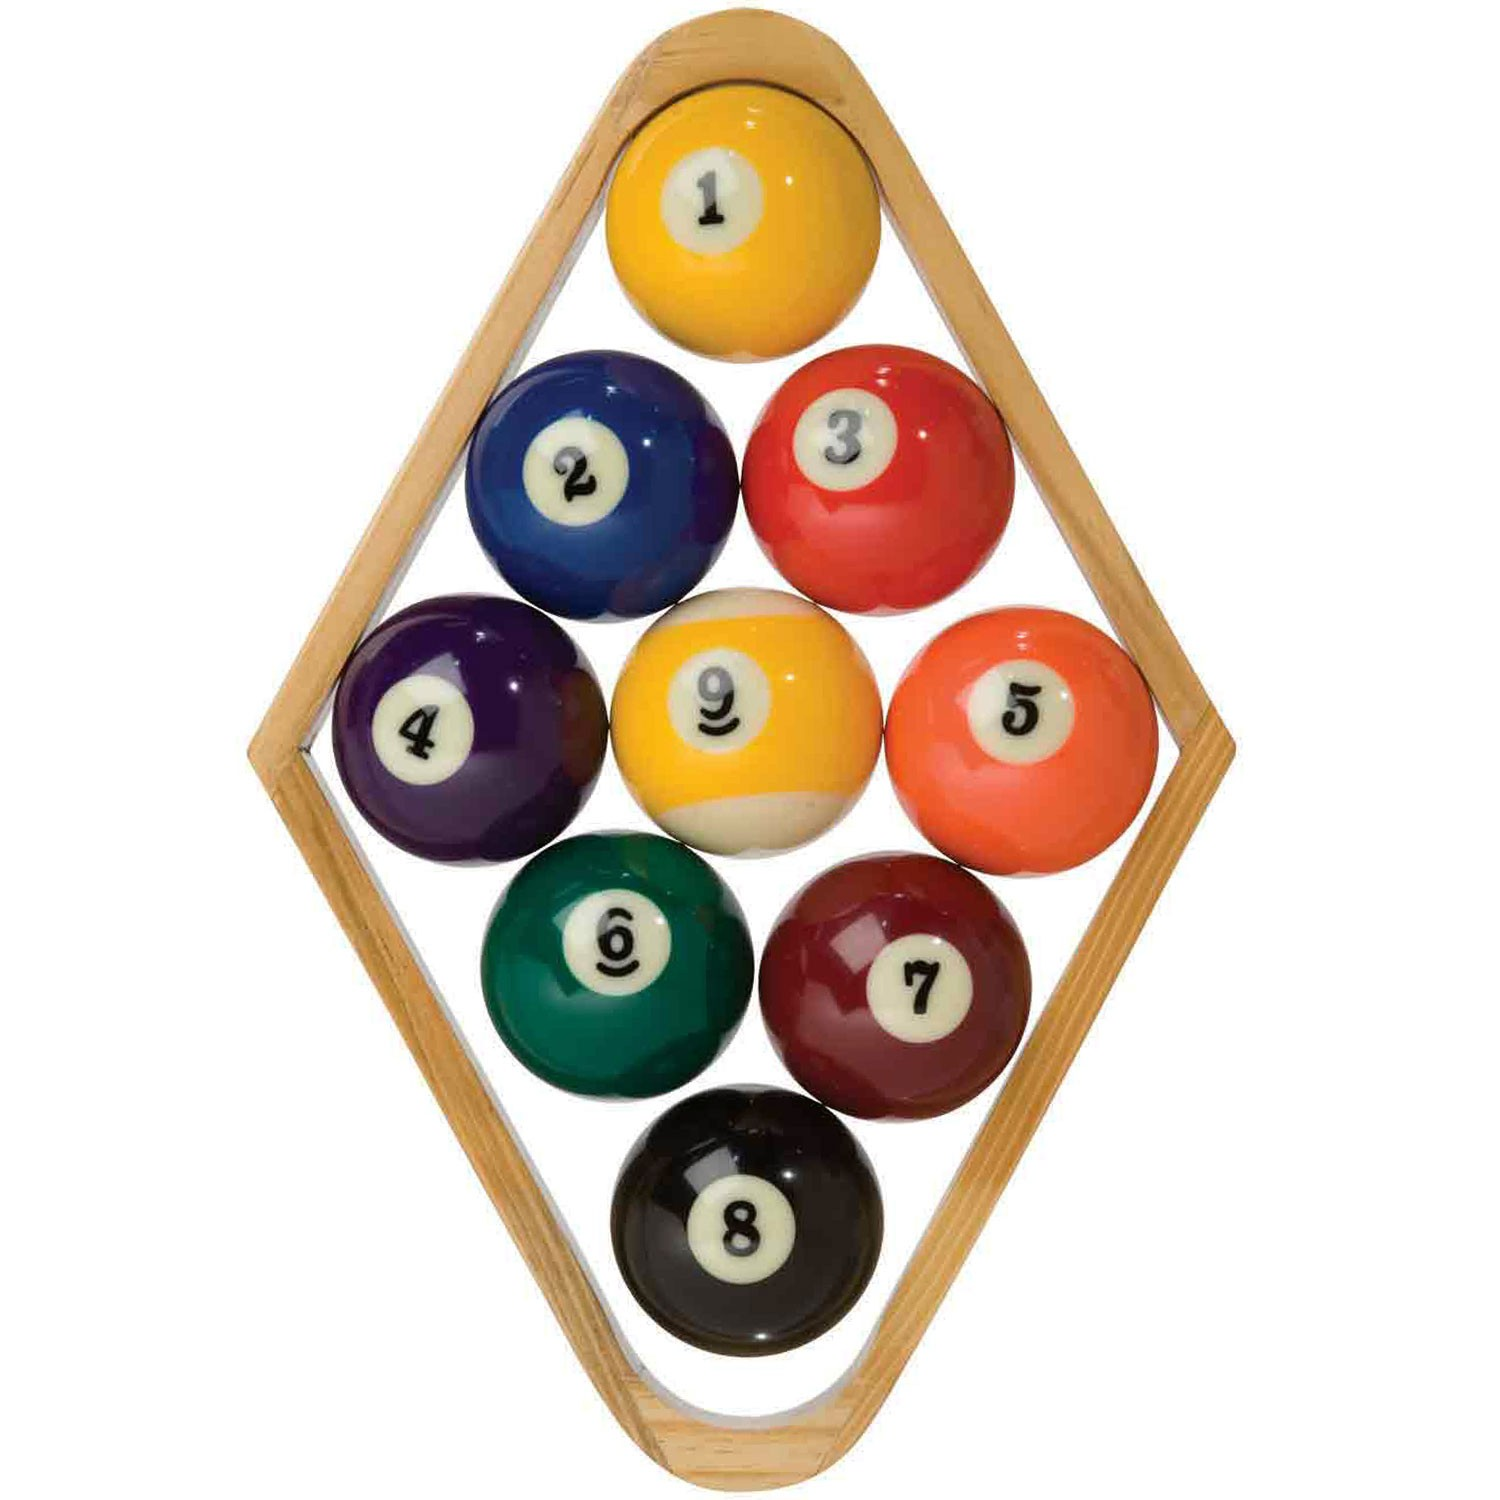 Sur games nine balls - 678356